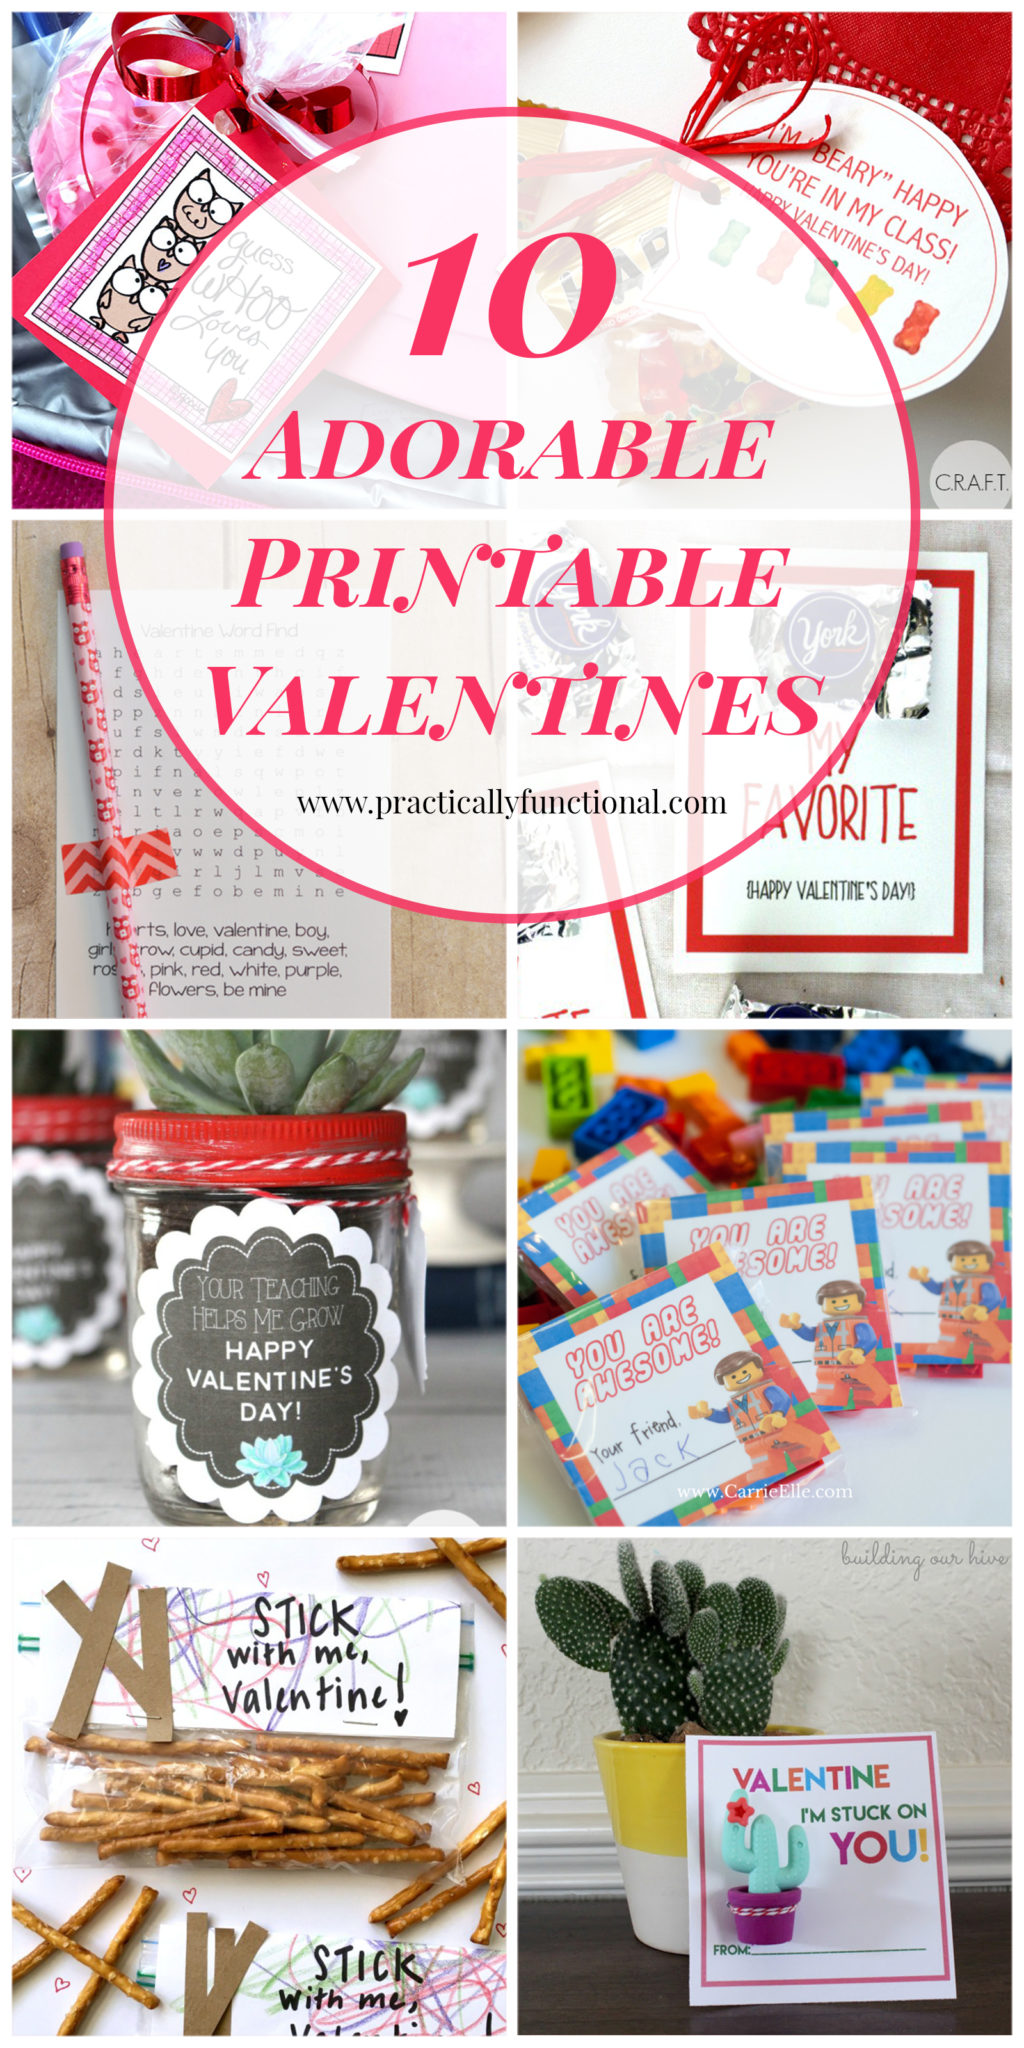 These printable valentines are so cute! Perfect for classroom valentines!